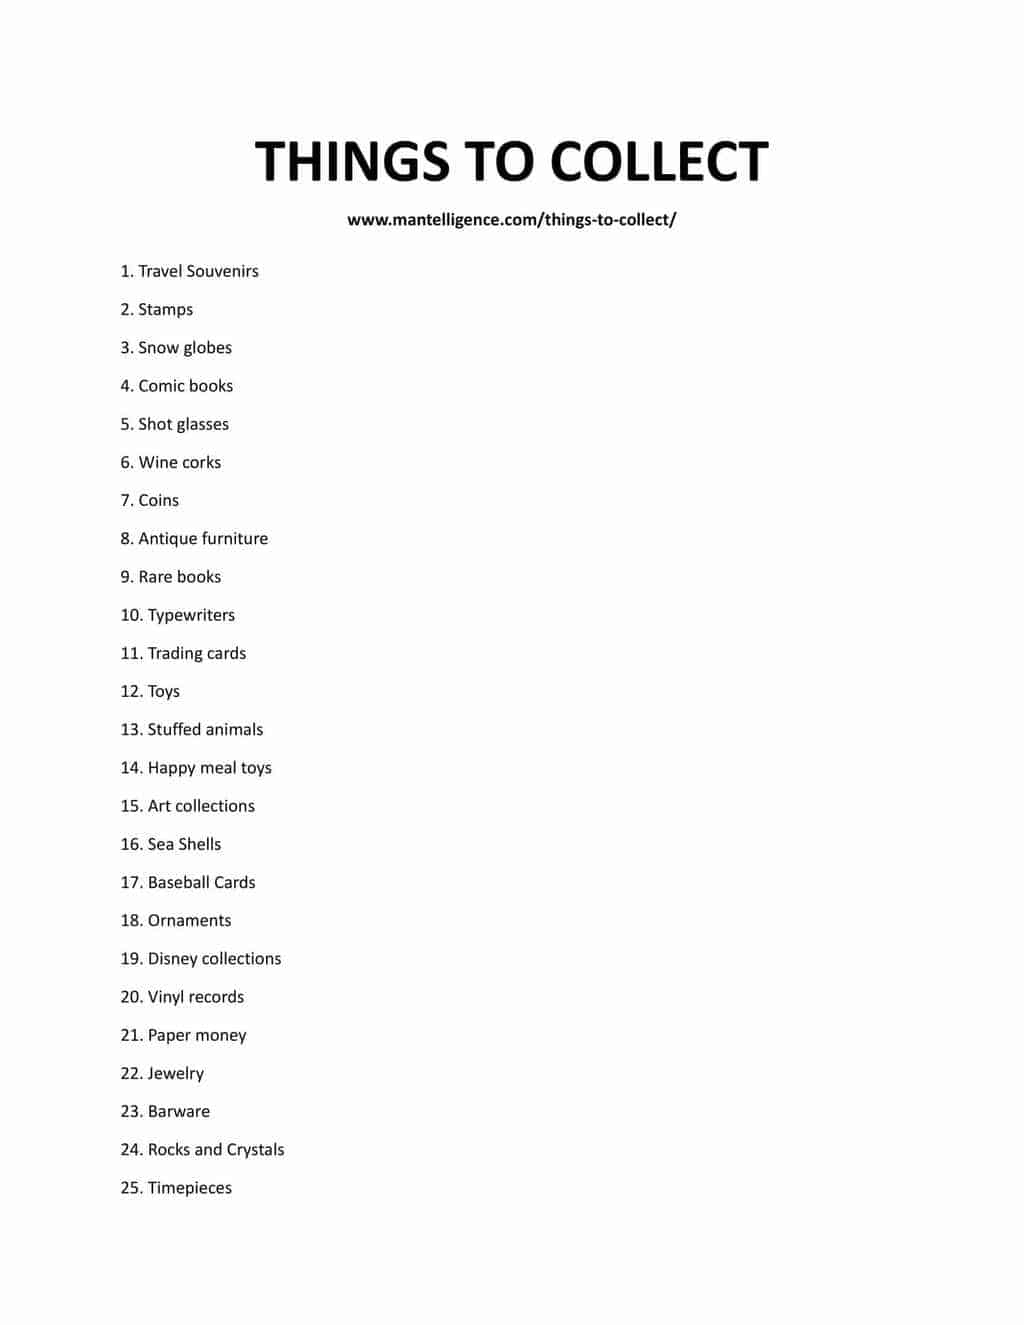 Downloadable and printable list of things